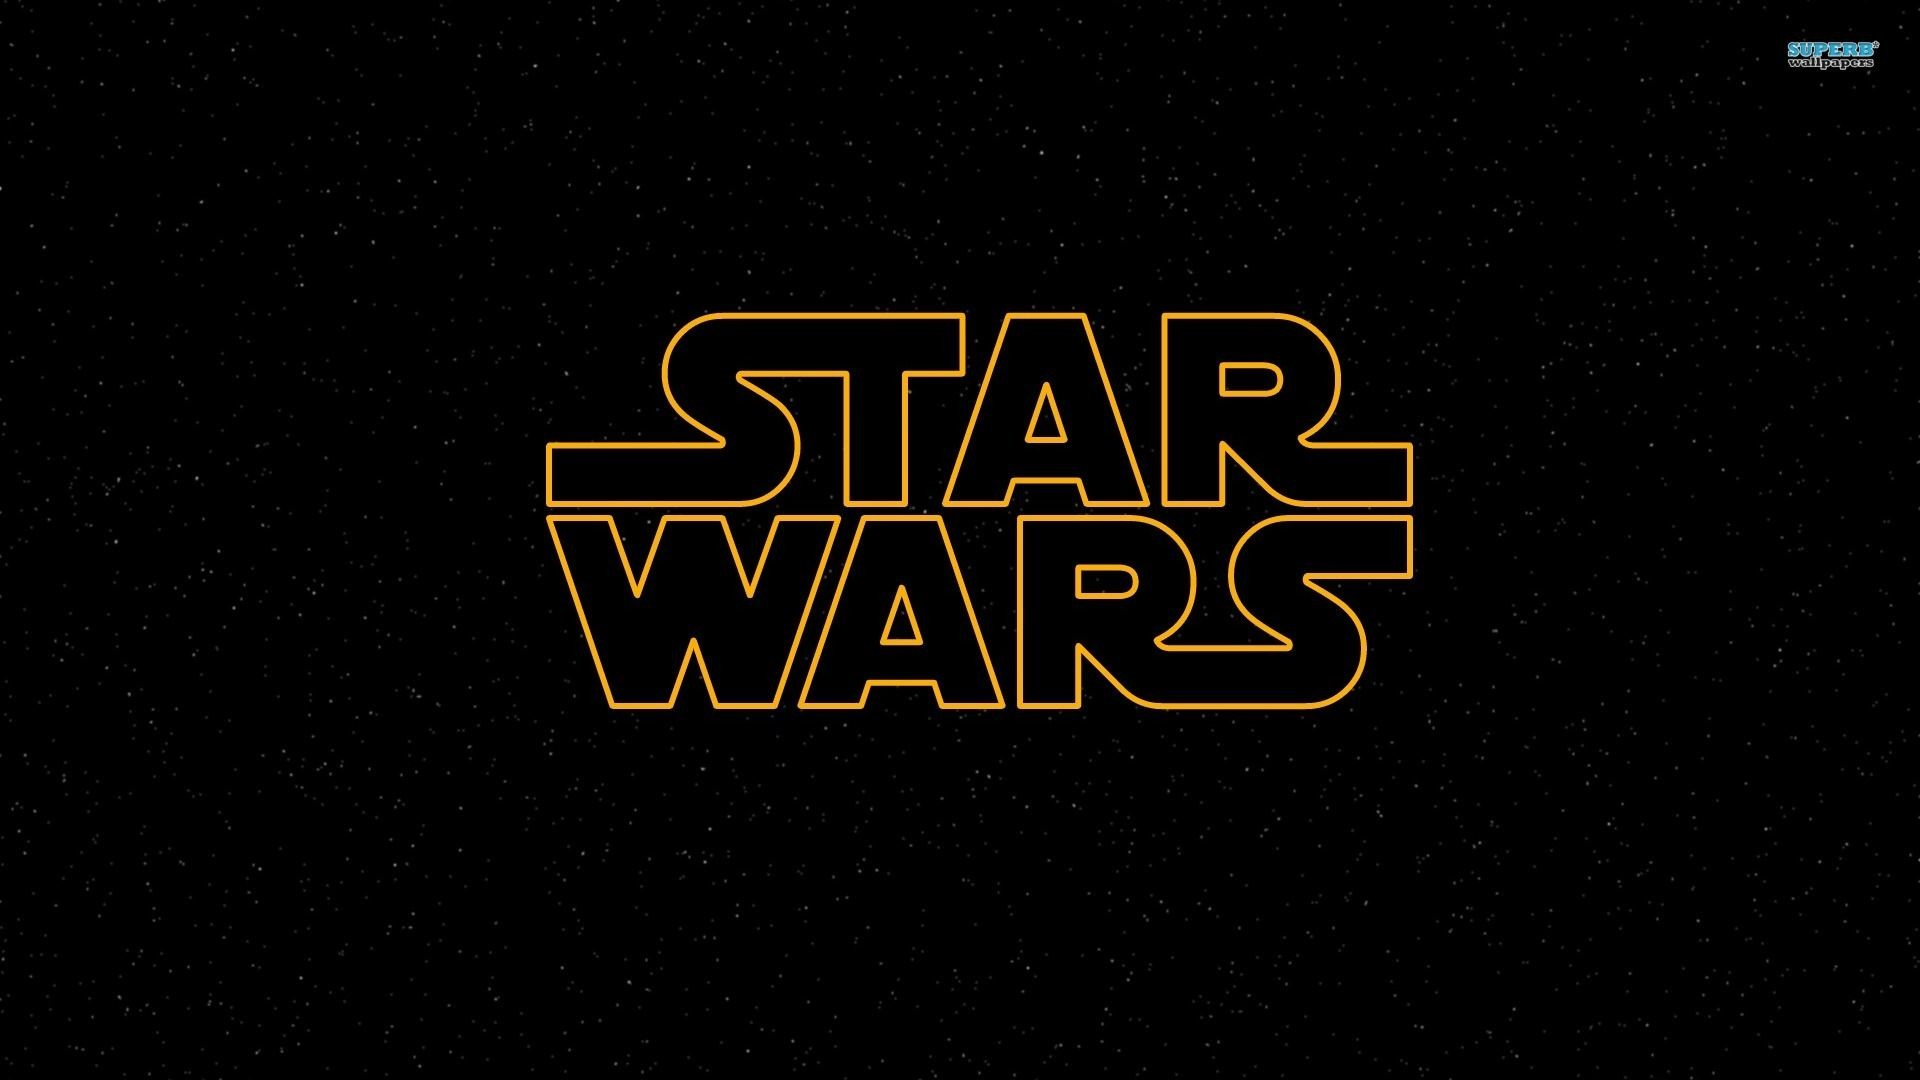 1920x1080 Star Wars wallpapers 1080p